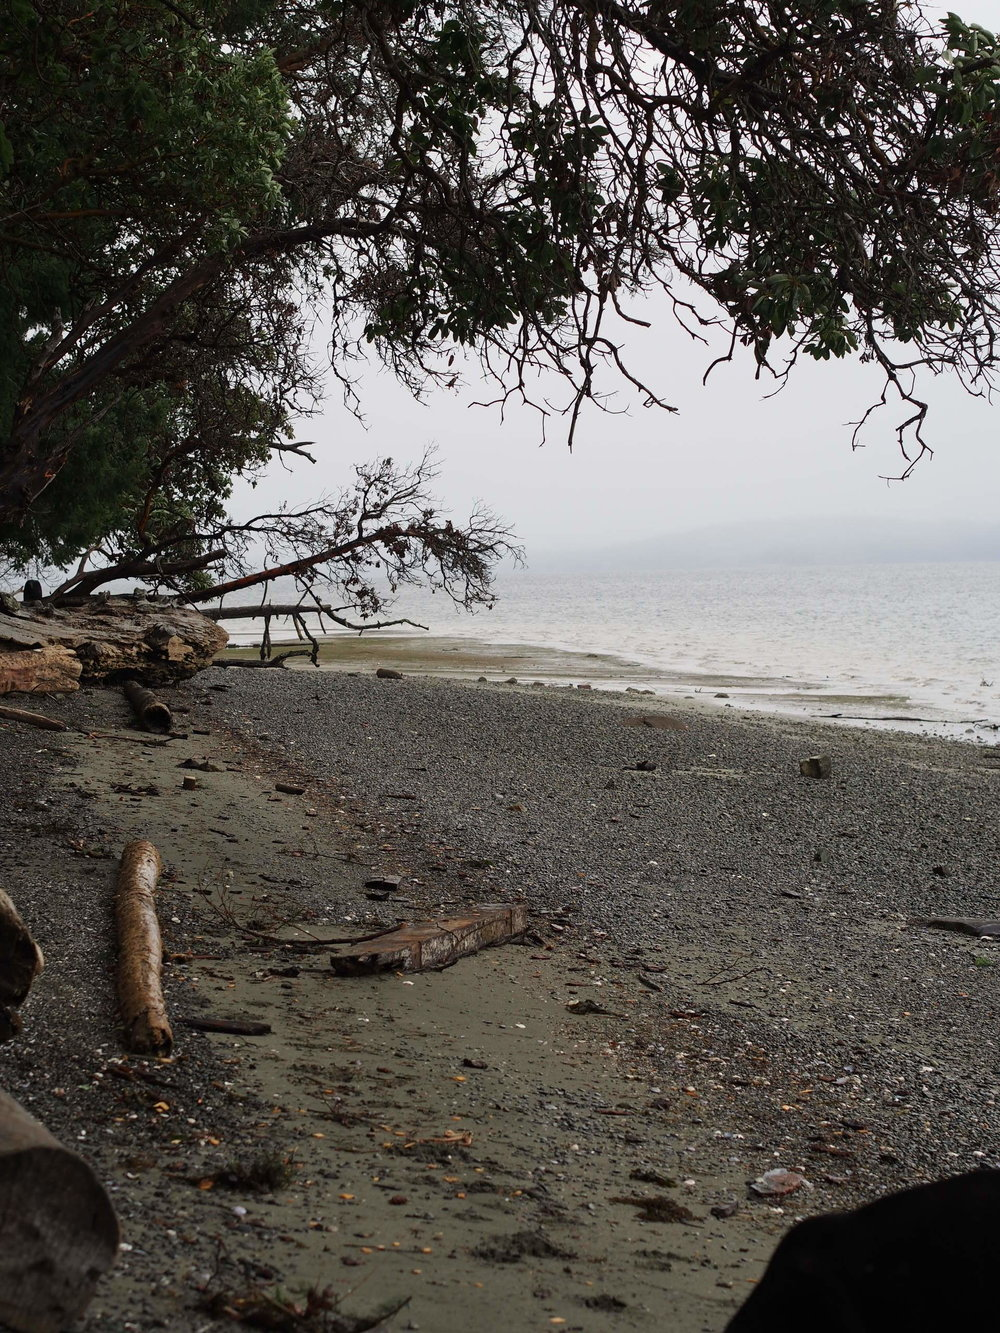 Crofton View from the Public Beach, Vancouver Island BC Canada